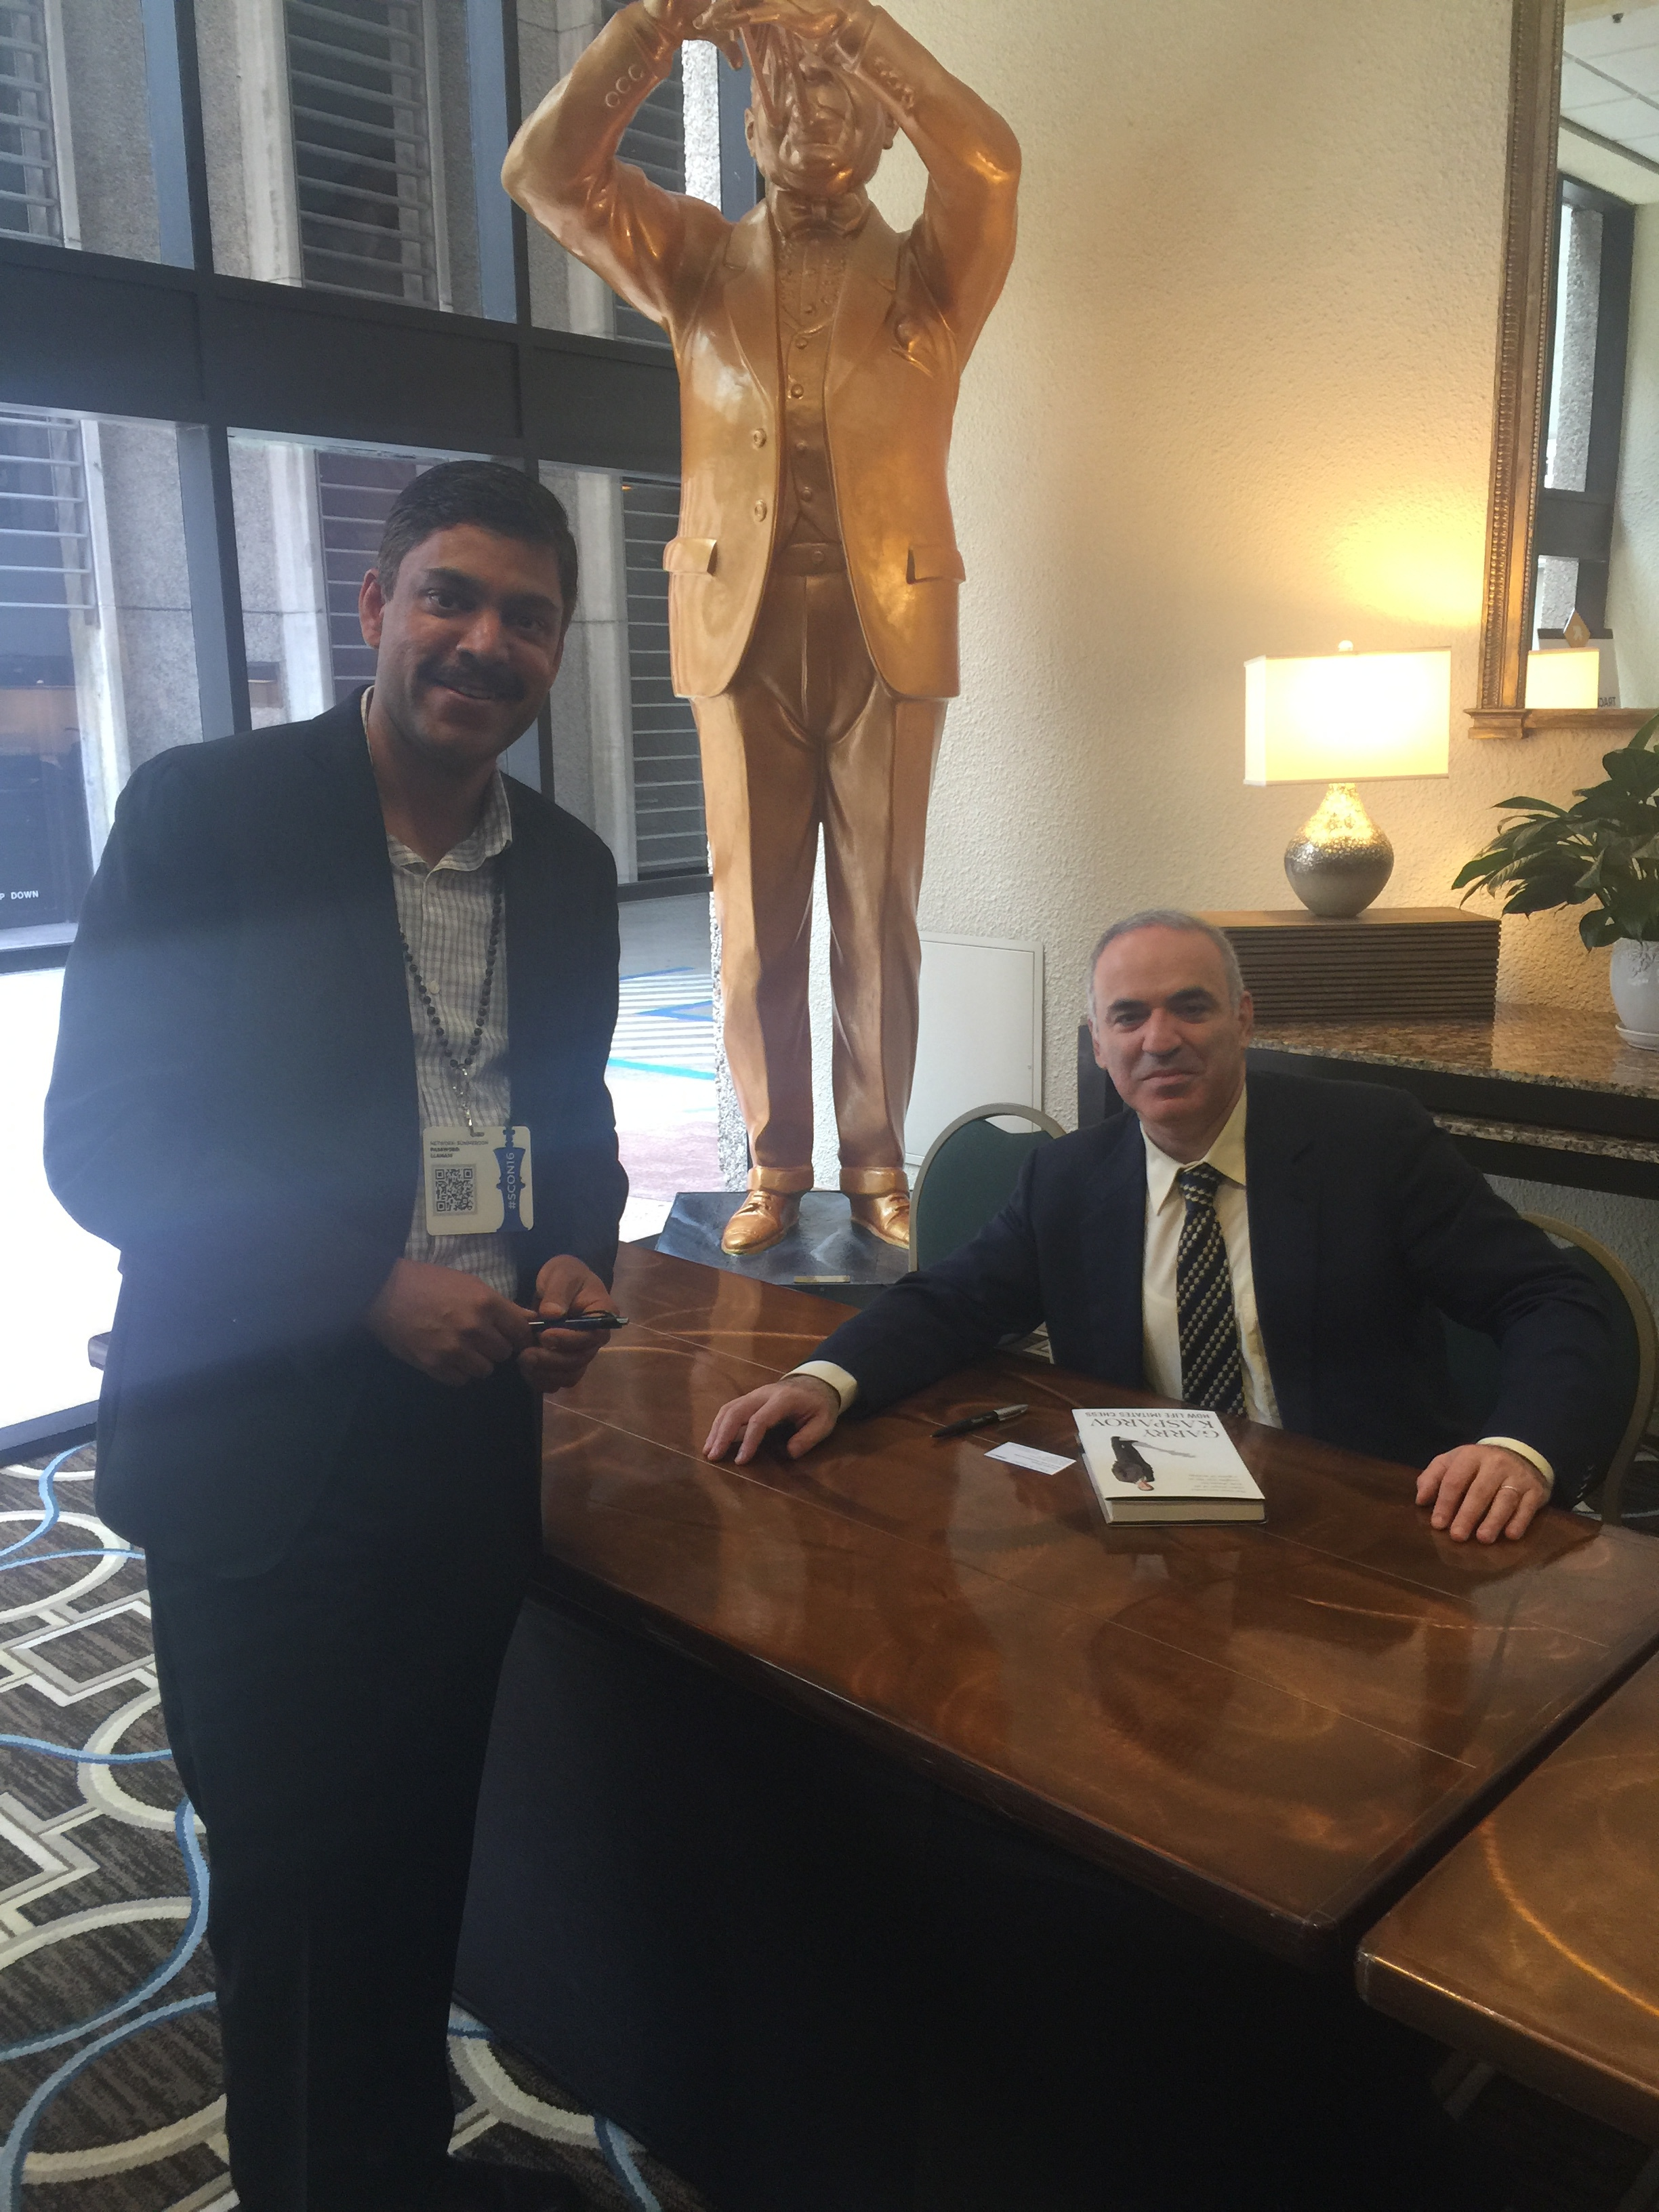 With Garry Kasparov in Llamasoft SummerCon 2016 conference in  New Orleans